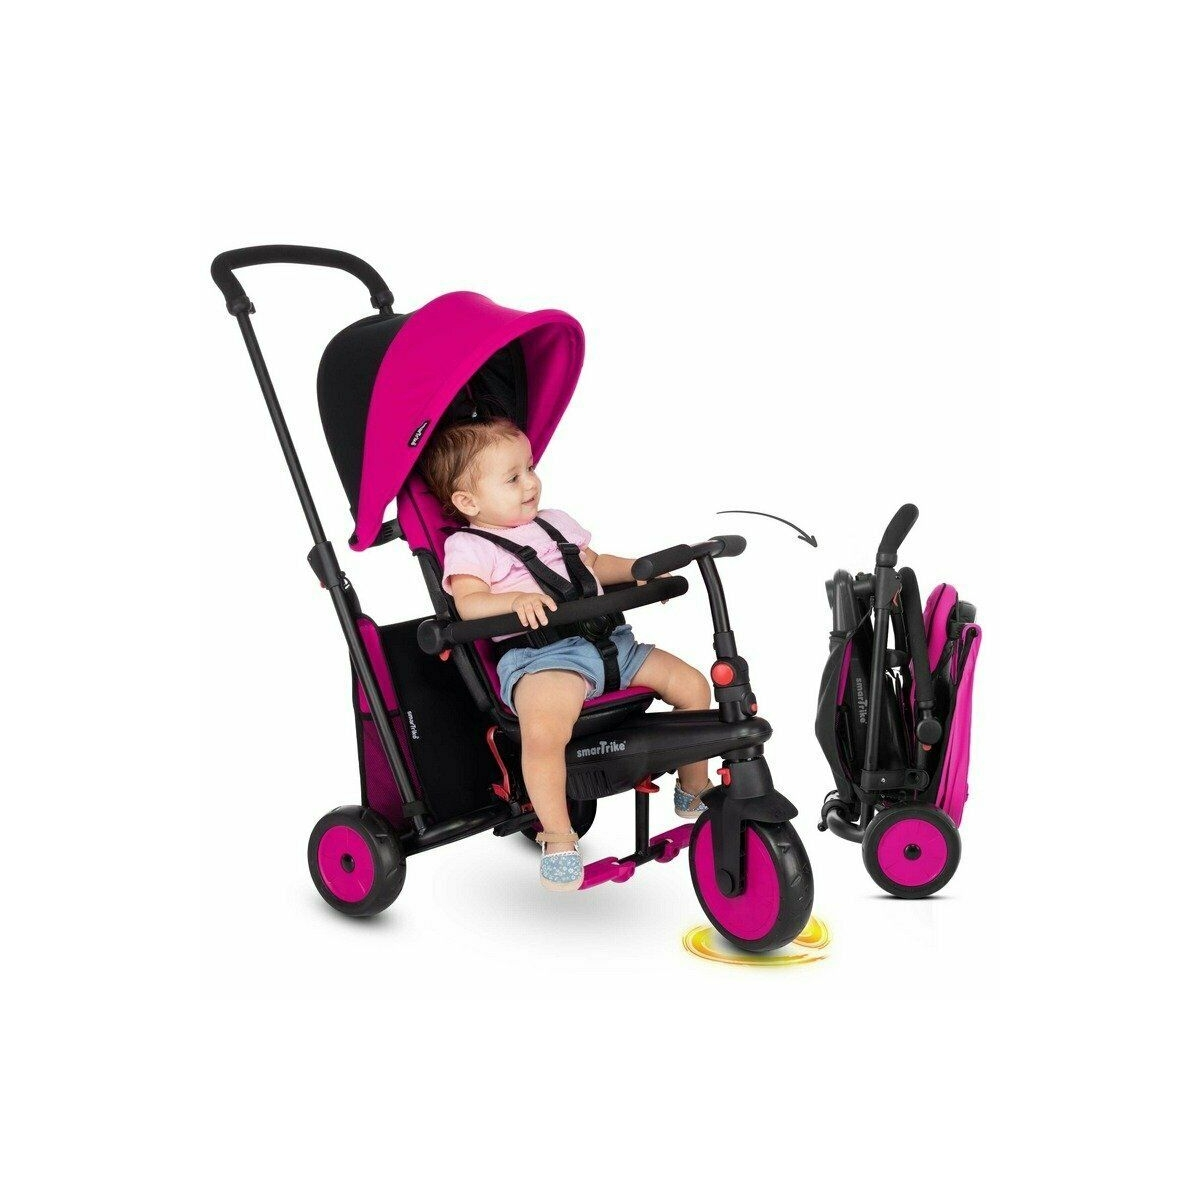 Picture of SmarTrike 6in1 Folding Baby Tricycle STR3-Pink (NEW)